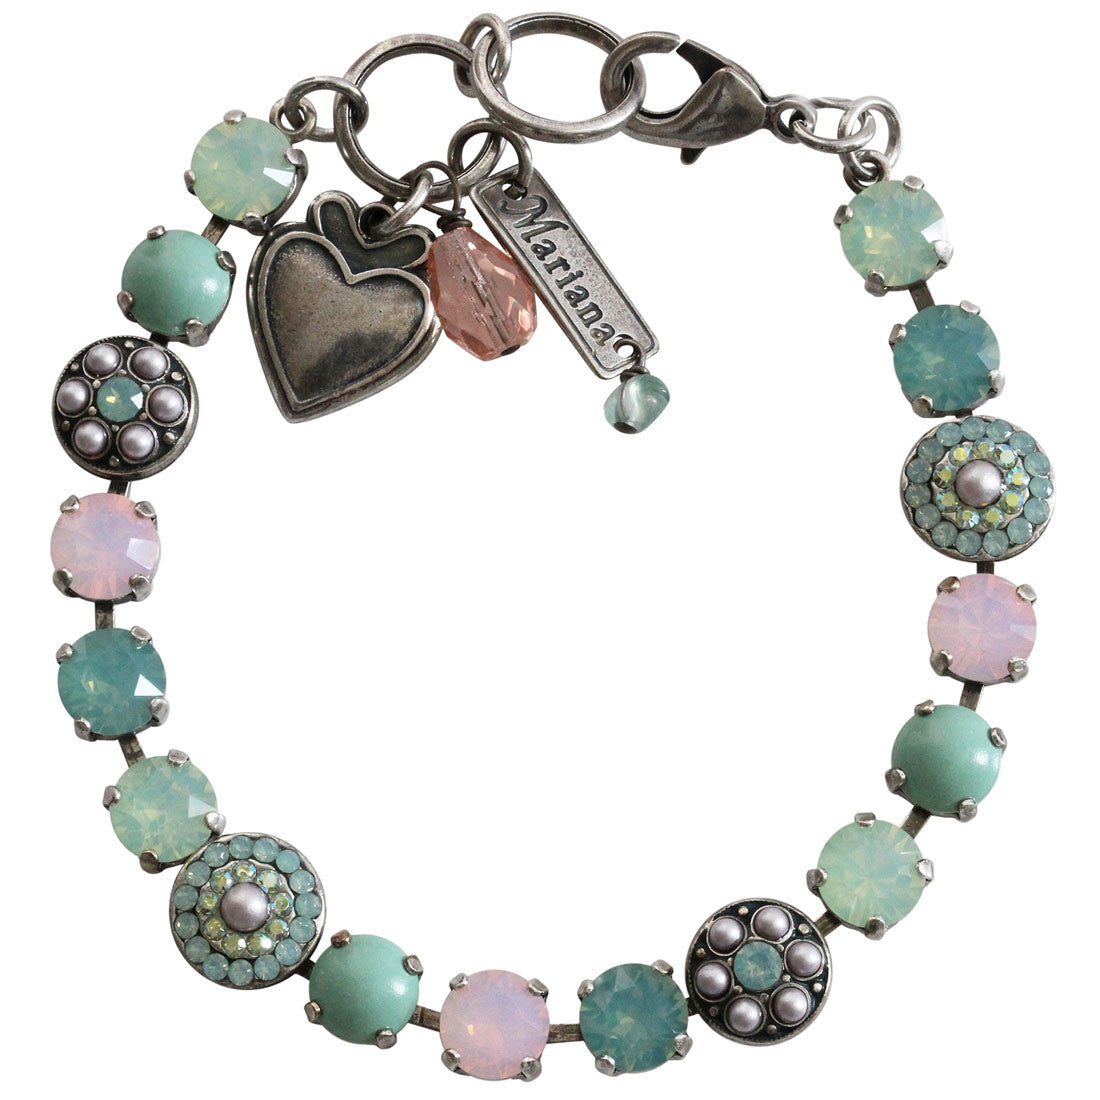 "Mariana Silver Plated Flower Shapes Swarovski Crystal Bracelet, 7.25"" Morning Glory 4044 1342"